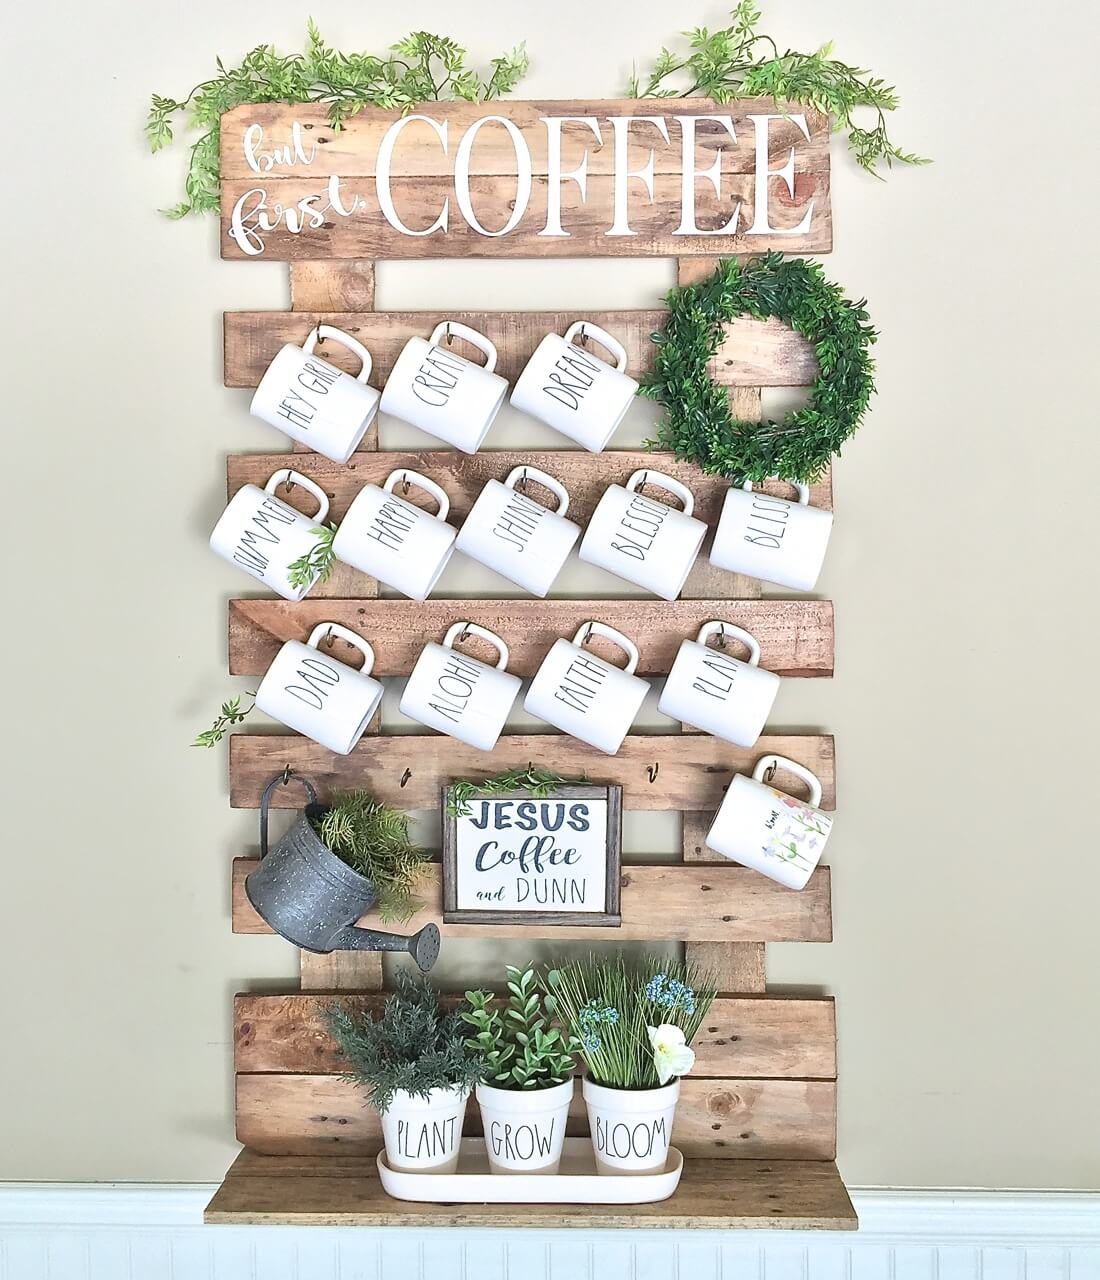 Diy coffee mug holder diy do it your self for Mug racks ideas